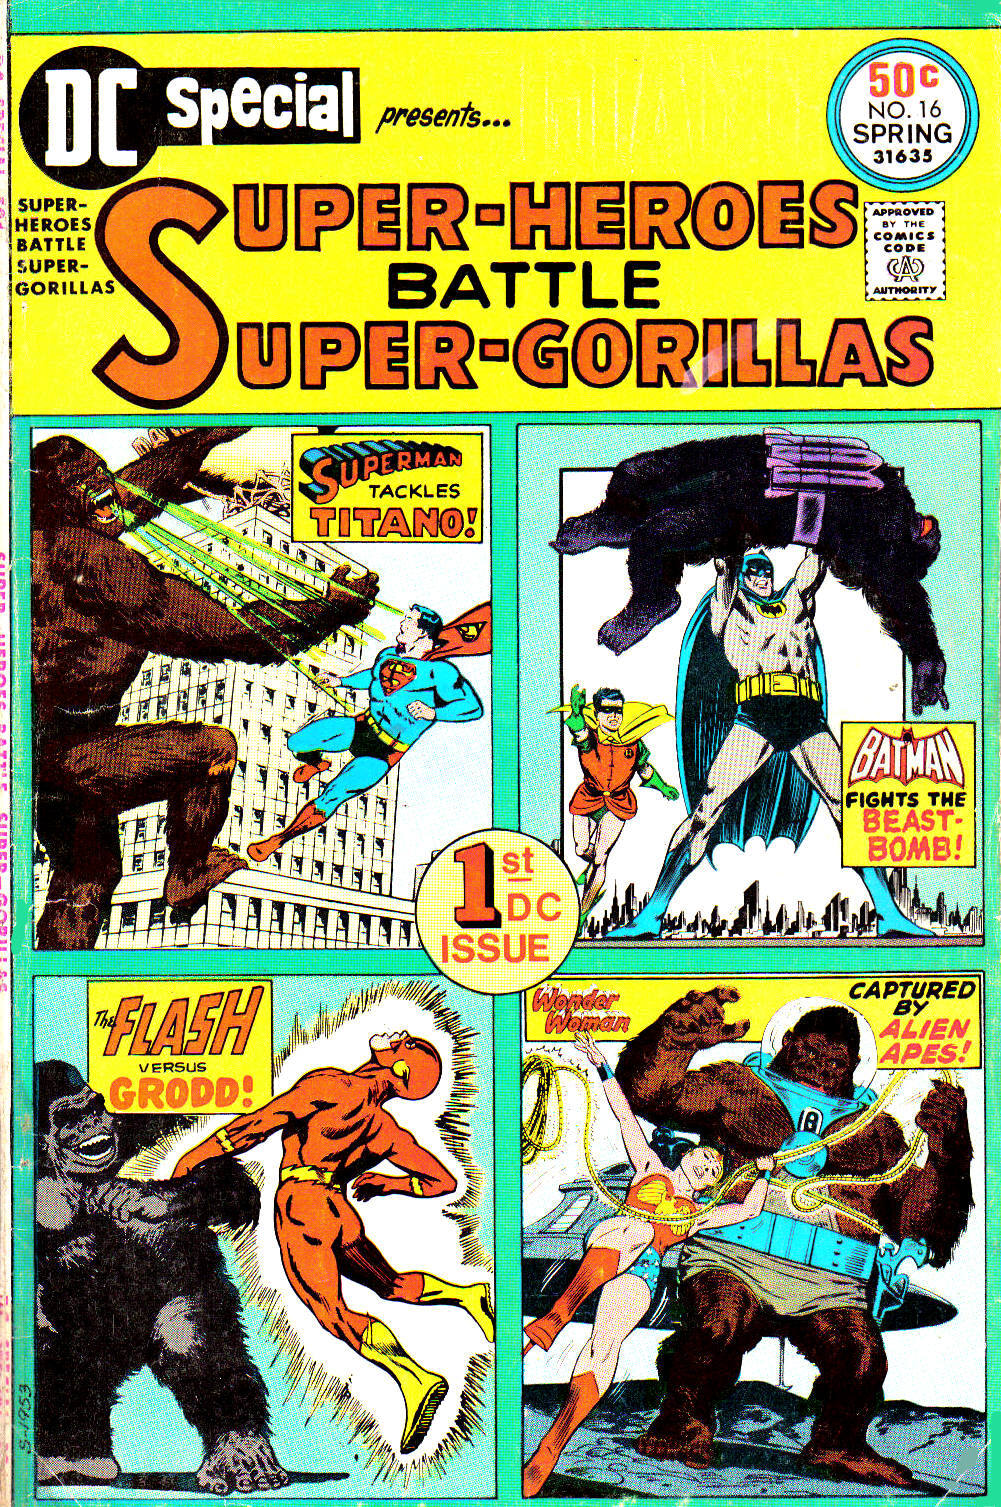 comicbookcovers:  DC Special #16, Super-Heroes Battle Super-Gorillas, Spring 1975, cover by Curt Swan, Carmine Infantino, and Ross Andru.